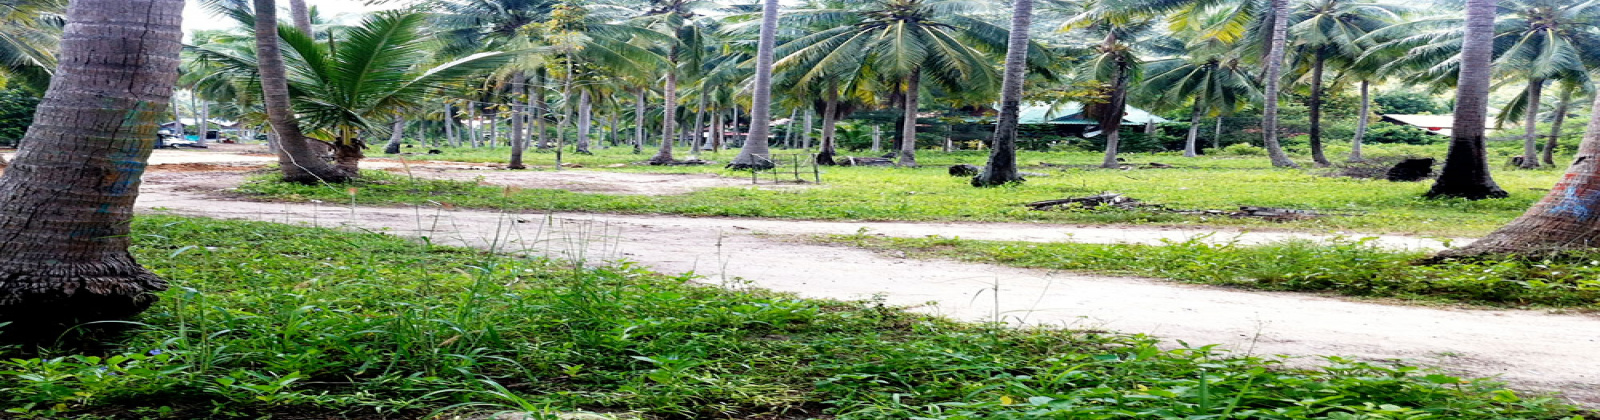 Land,For Sale,1007